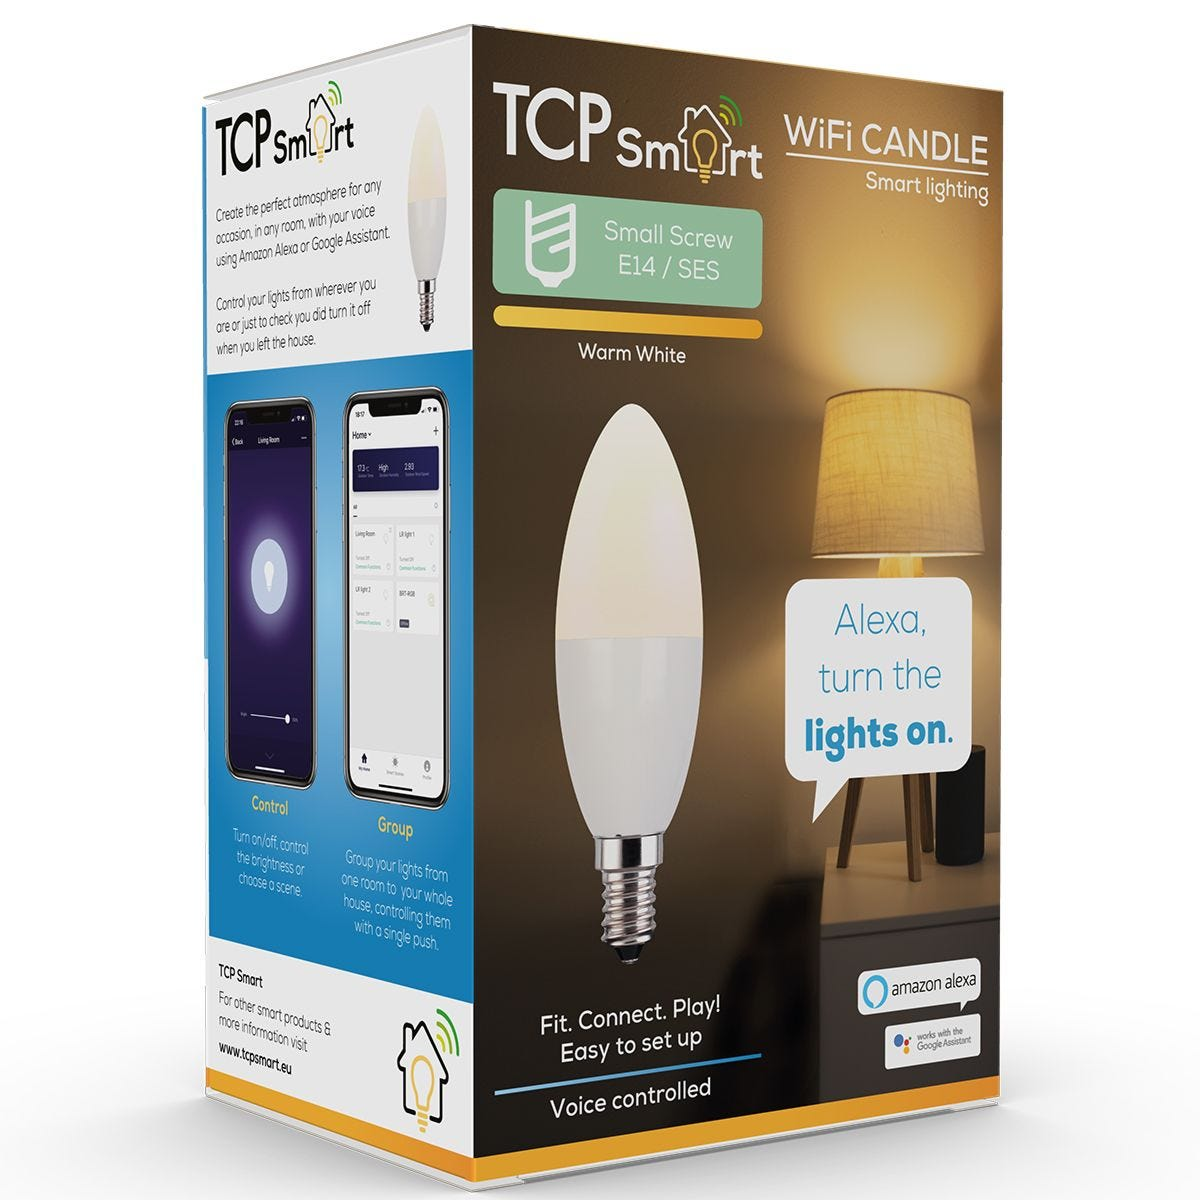 TCP Smart LED Wifi Candle 470 Lumens SES/E14 Dimmable - Warm White